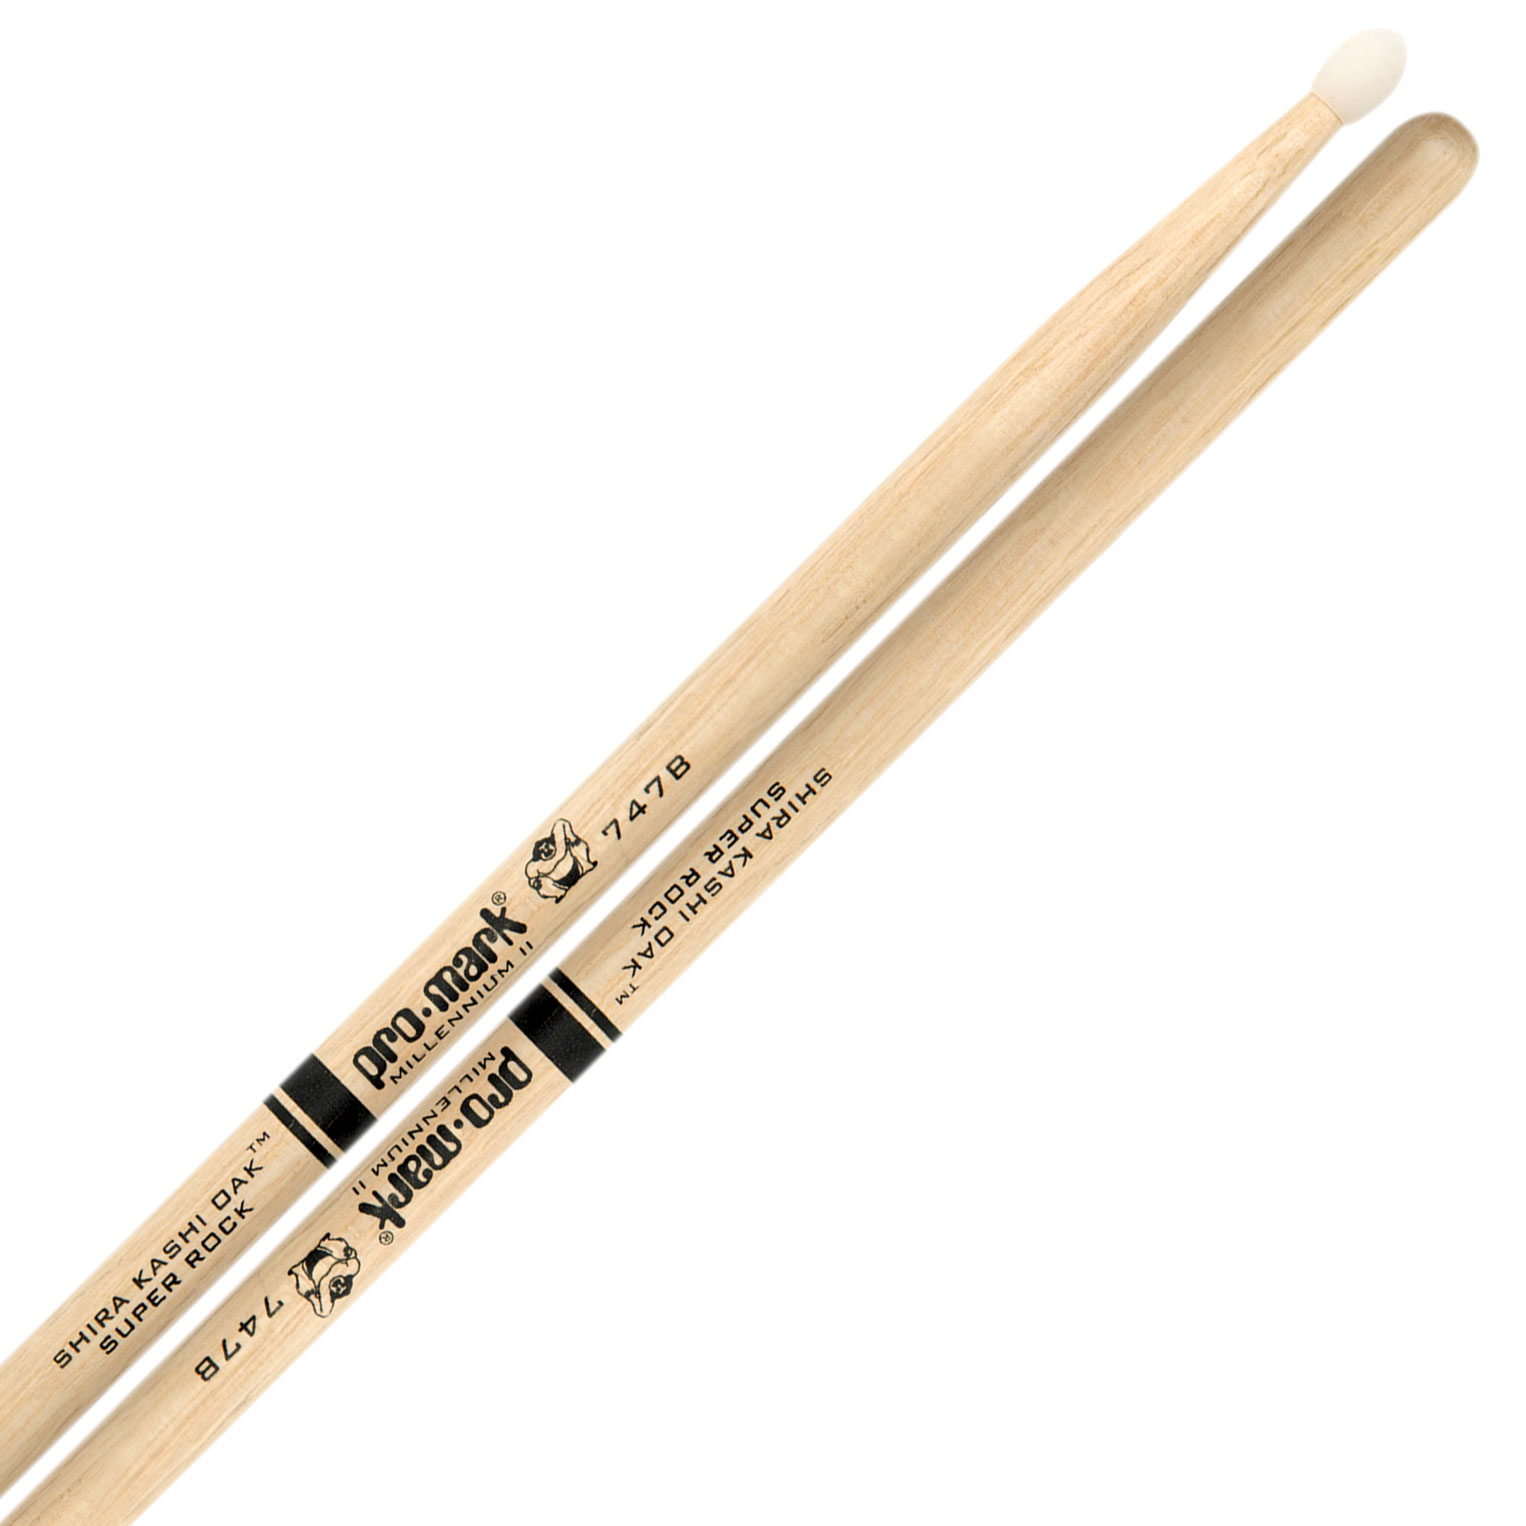 Promark Super Rock Shira Kashi Oak Nylon Tip Drumsticks